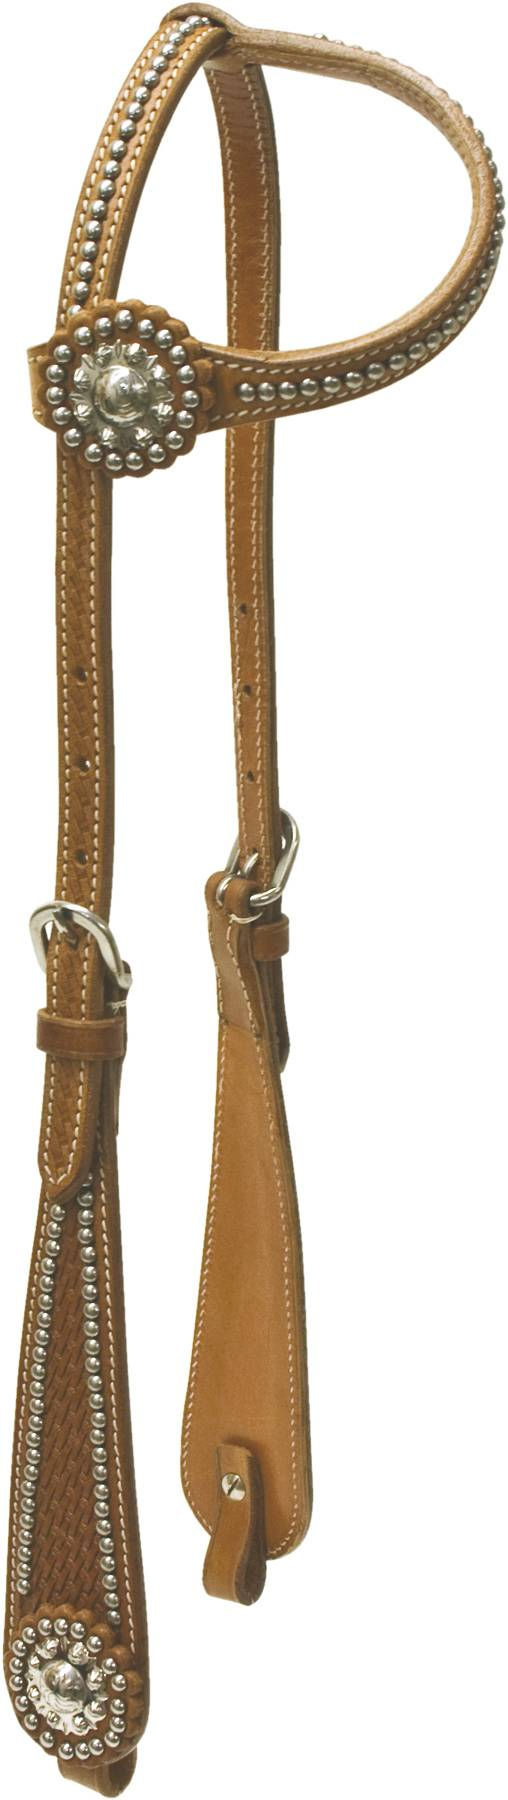 Cowboy Pro One Ear Flared Cheek Headstall